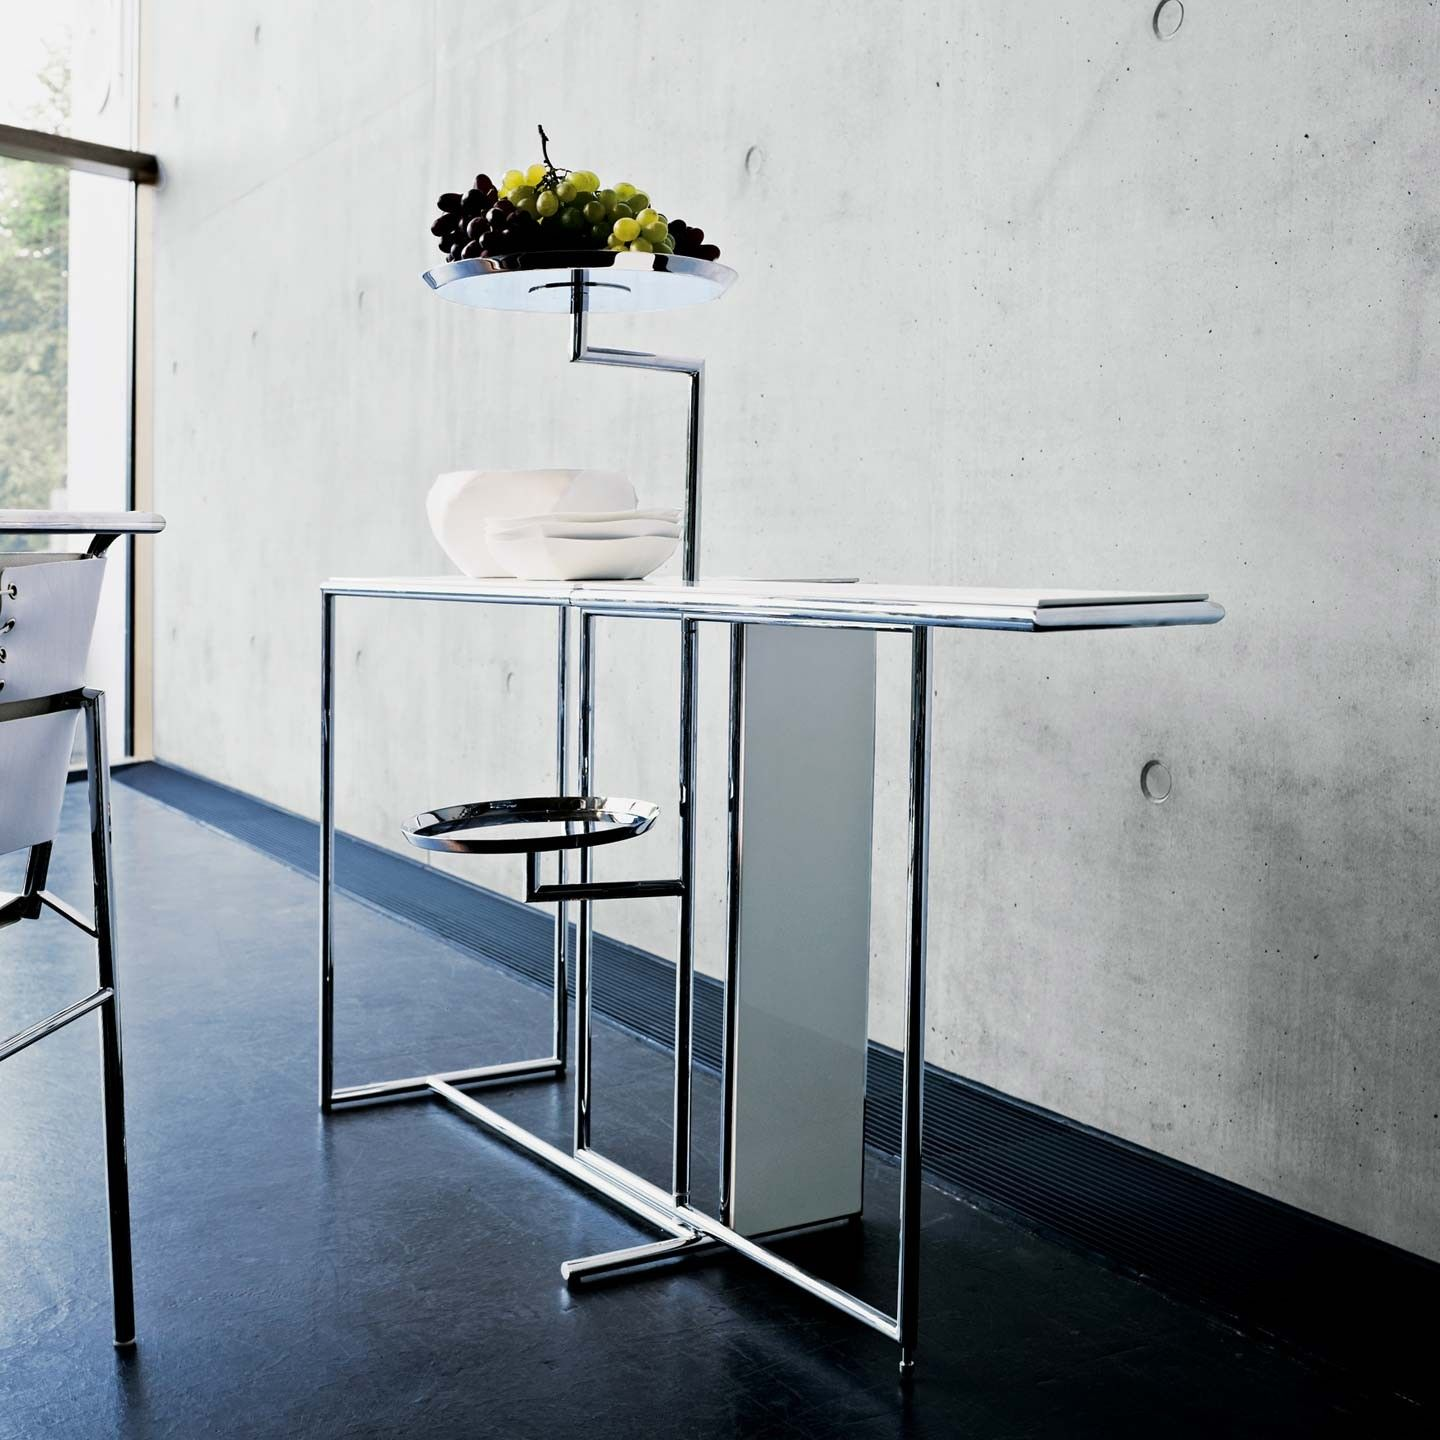 Rivoli Served As The Tea Table In The Living Room Of Eileen Gray S Summer House E 1027 The Graceful Lightweight That No Doub Unique Furniture Eileen Gray Furniture Table